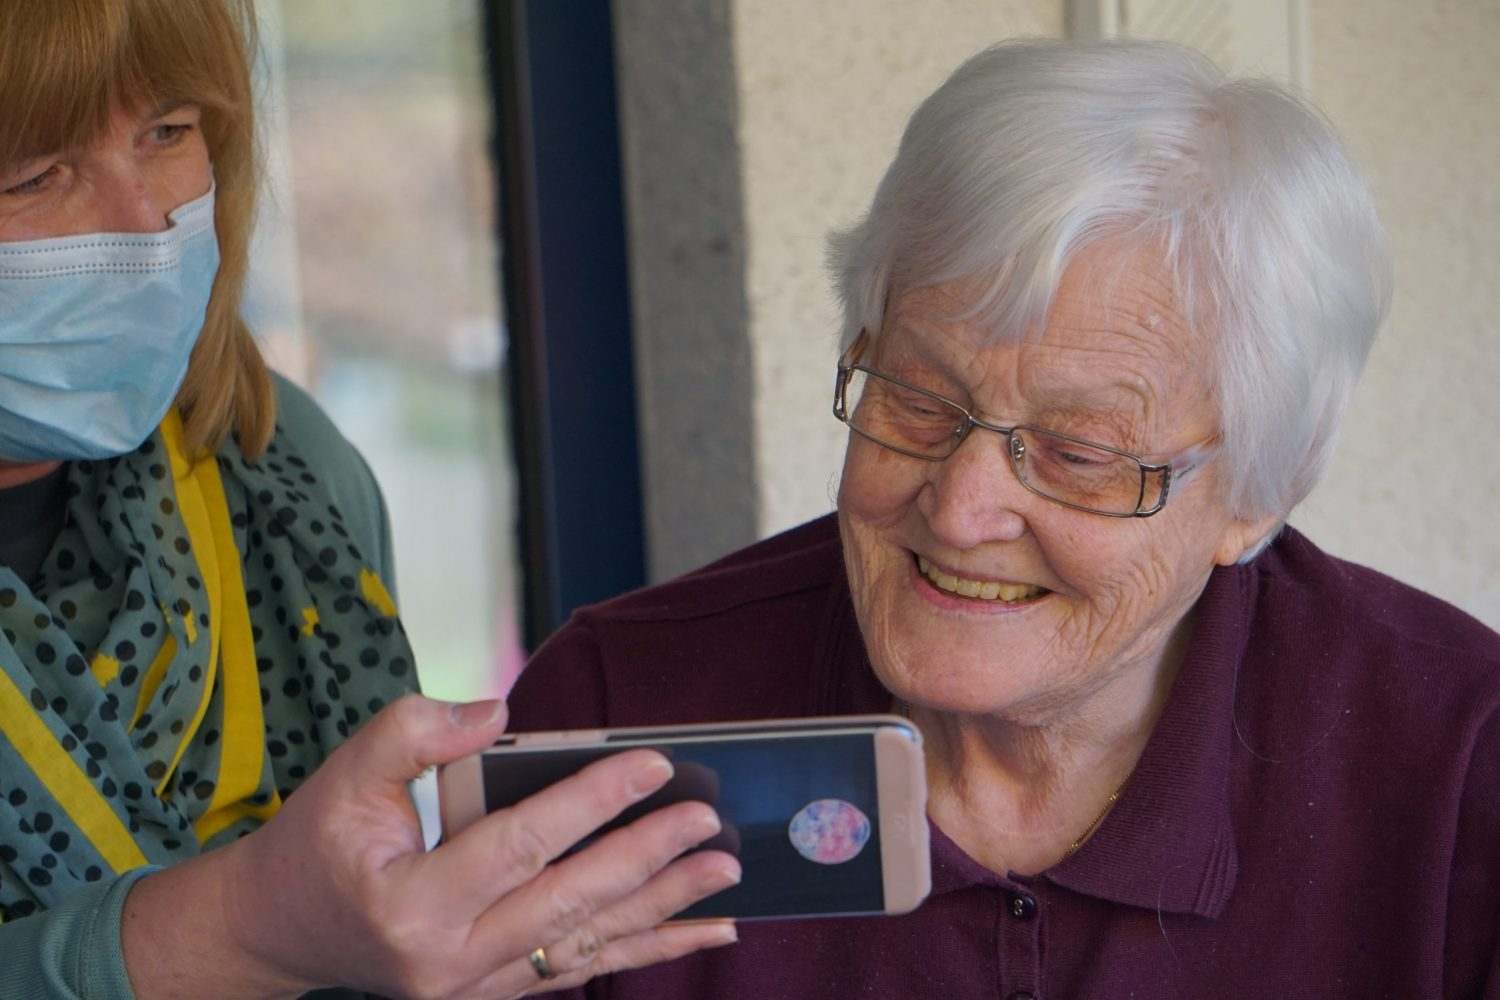 An elderly woman being shown something on a smartphone by a member of care staff wearing a face covering